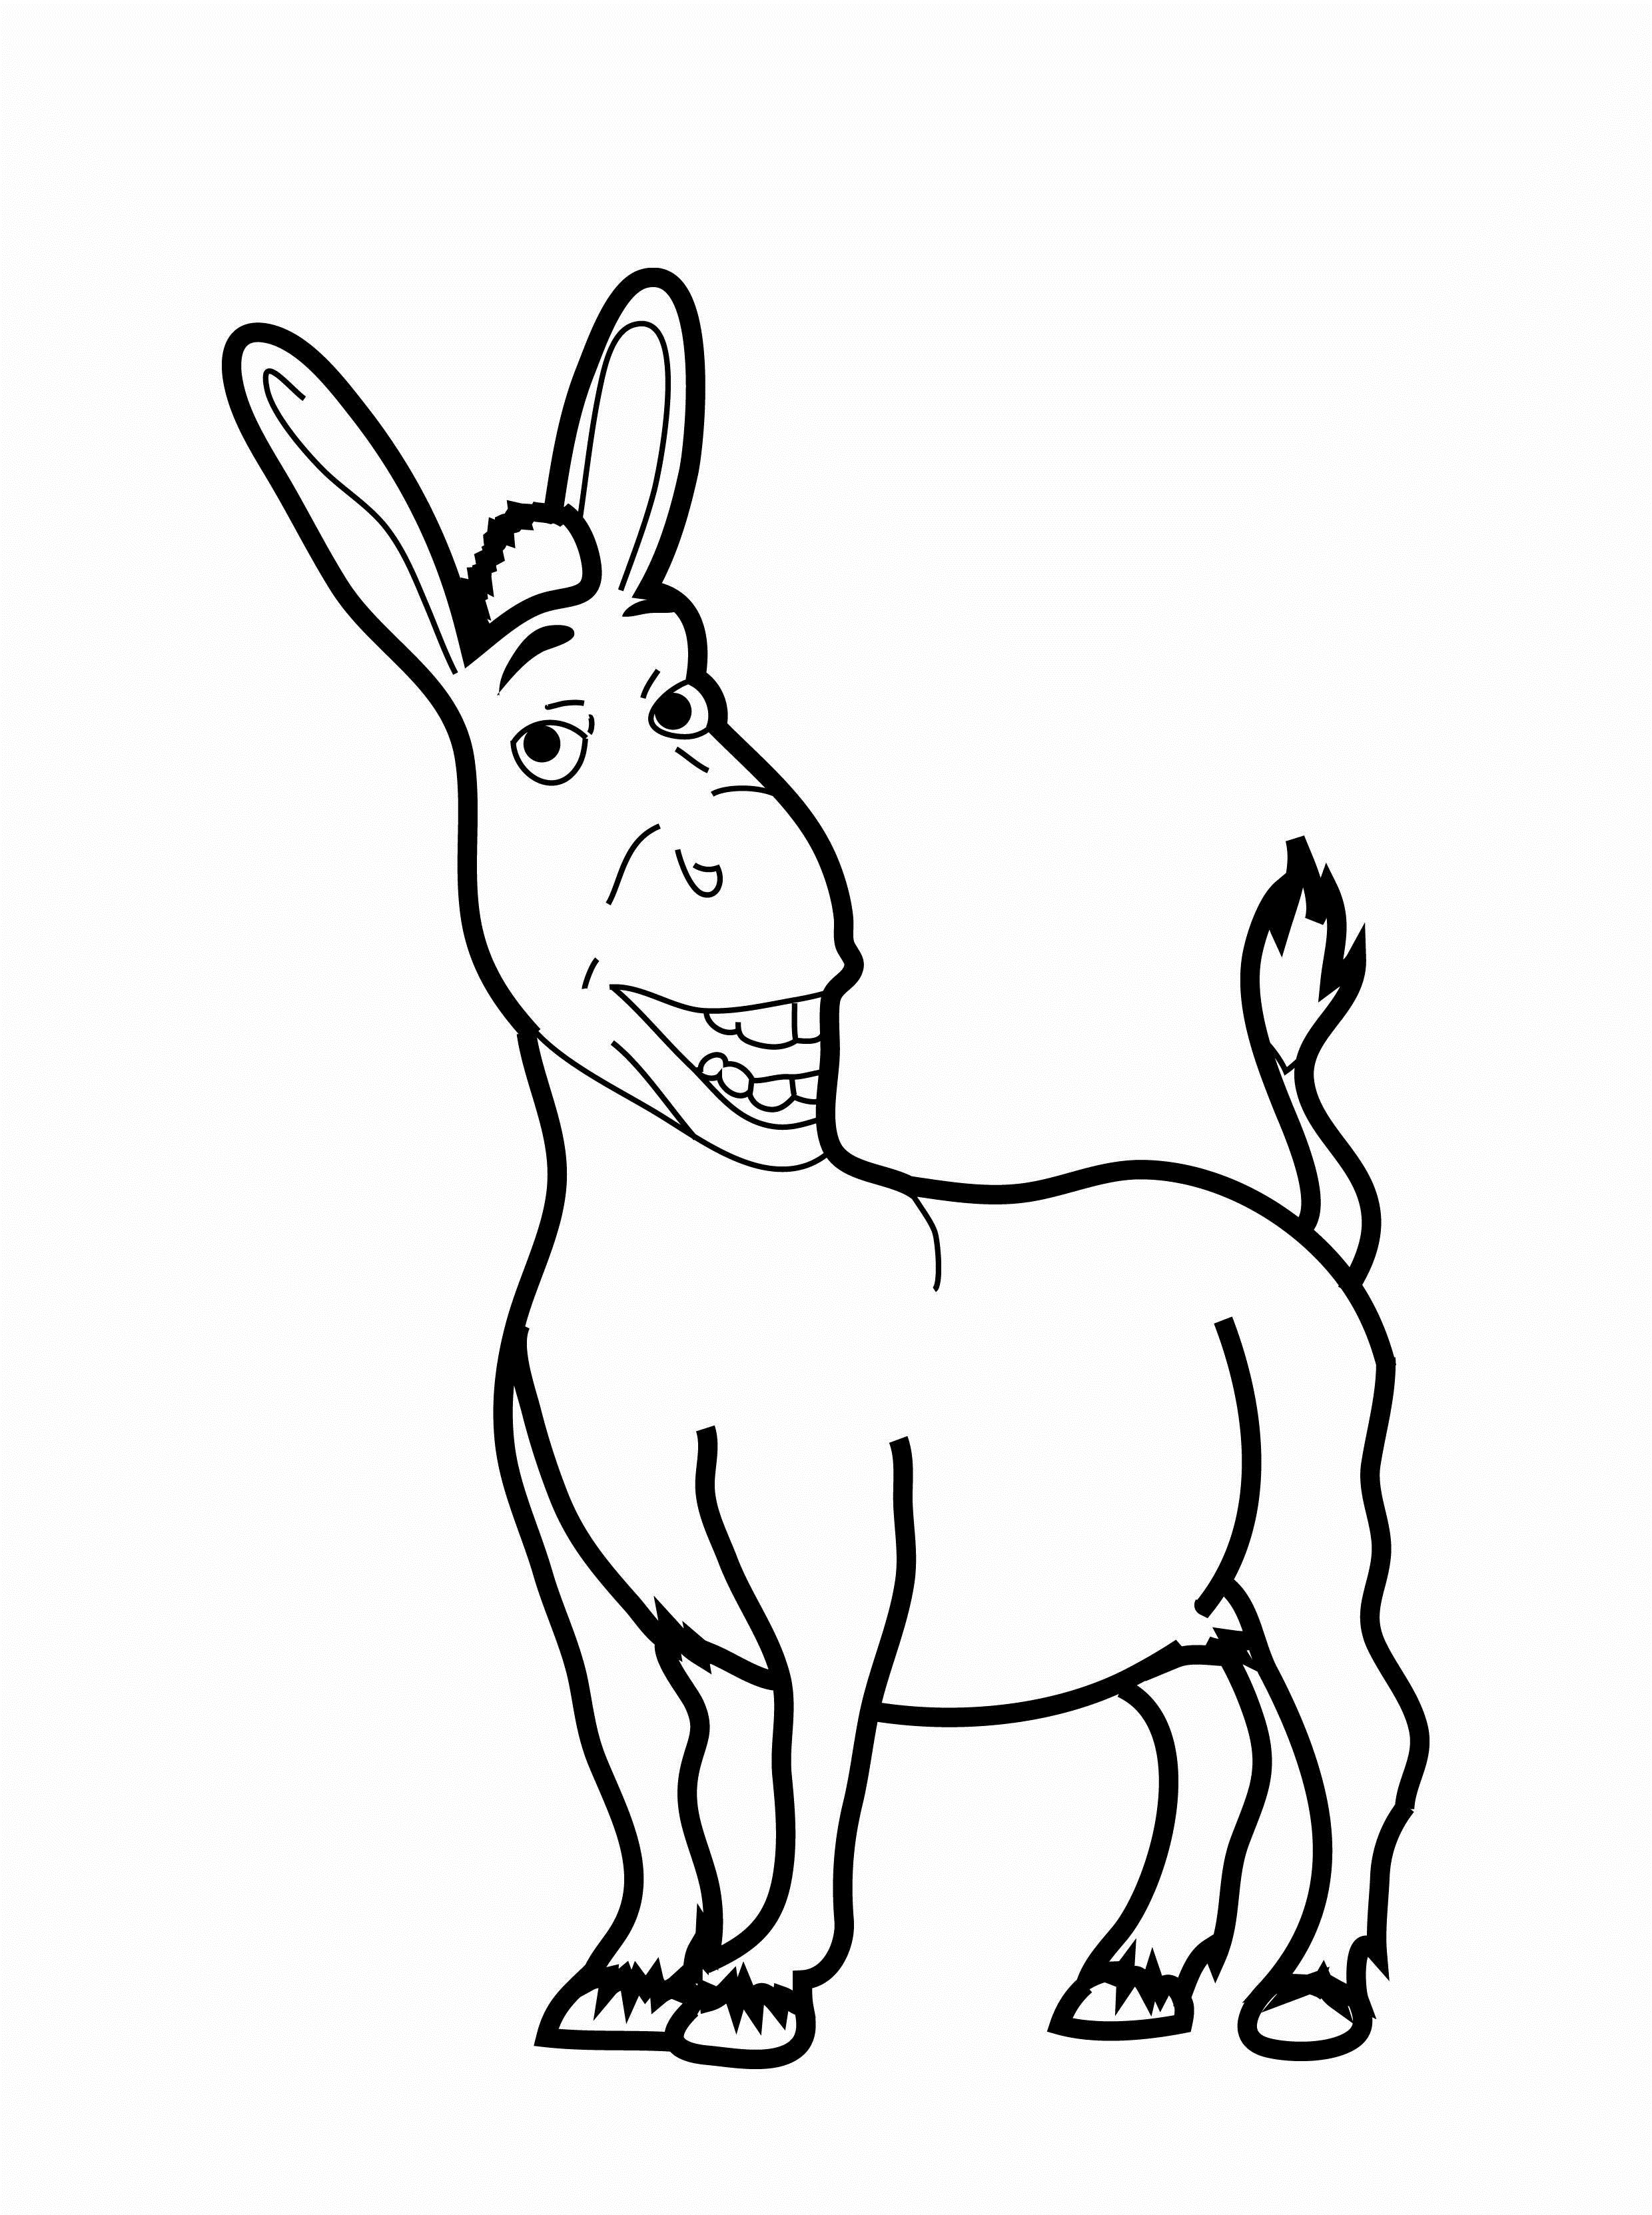 donkey coloring pages free printable donkey coloring pages for kids pages coloring donkey 1 2